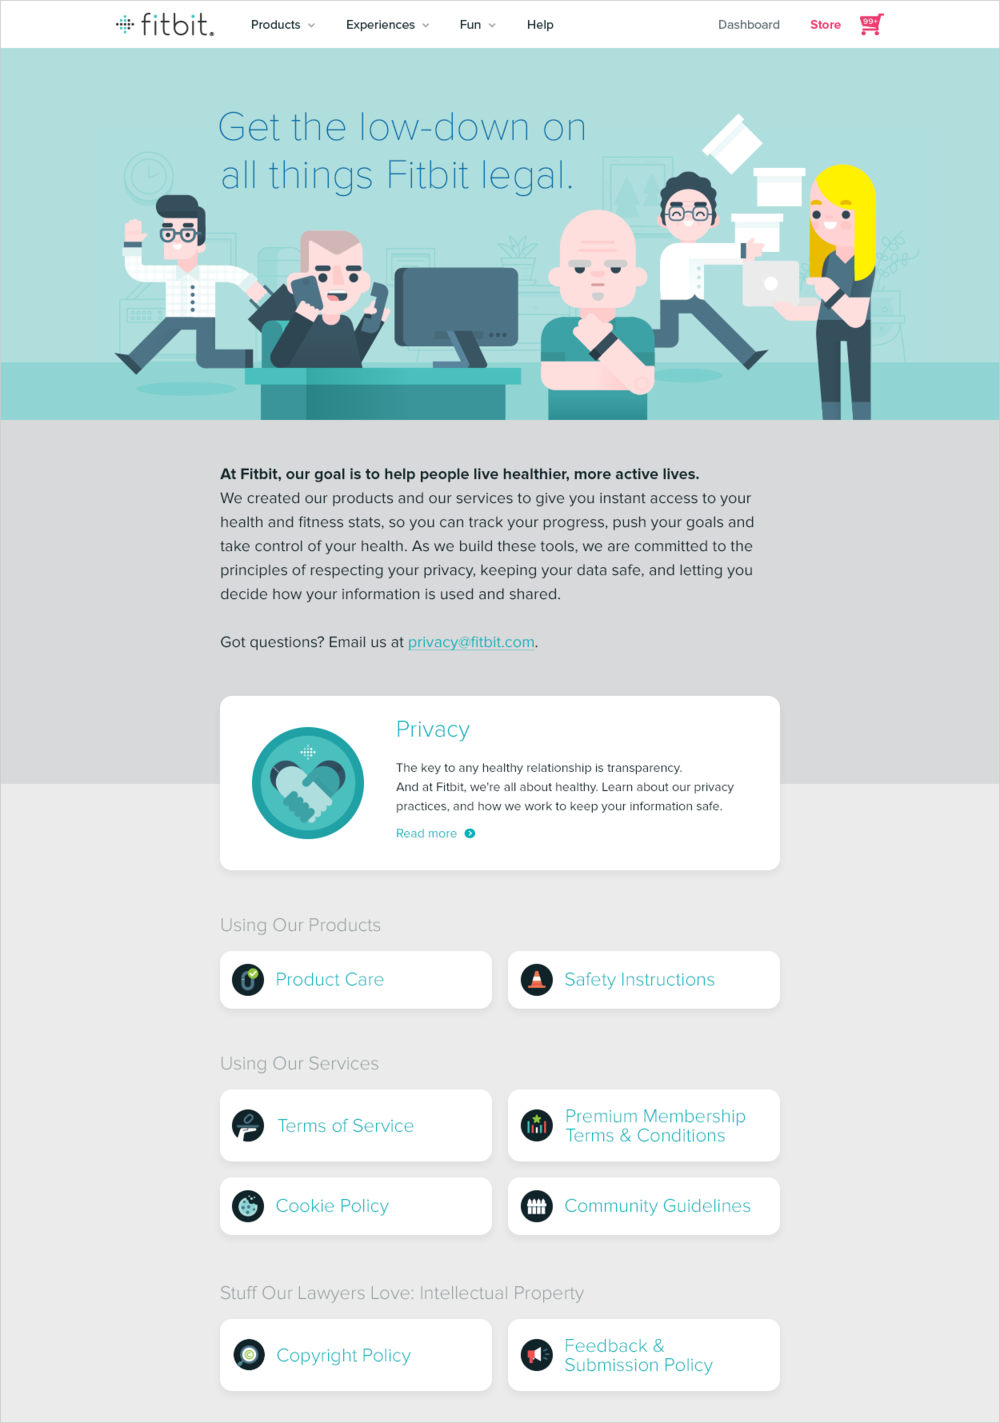 Making legal funfor Fitbit - Let's face it. To most people, legalese is bland.To stay true to Fitbit's mission, we redesigned the legal hub on Fitbit.com to feel as easy and simple as taking their first steps.We commissioned illustrations from Richard Perez throughout the pages, to bring in Fitbit's famous brand and create a familiar experience for the badge-seeking step warriors who use the Fitbit app.Fun fact: that's a factual depiction of the Fitbit legal team!